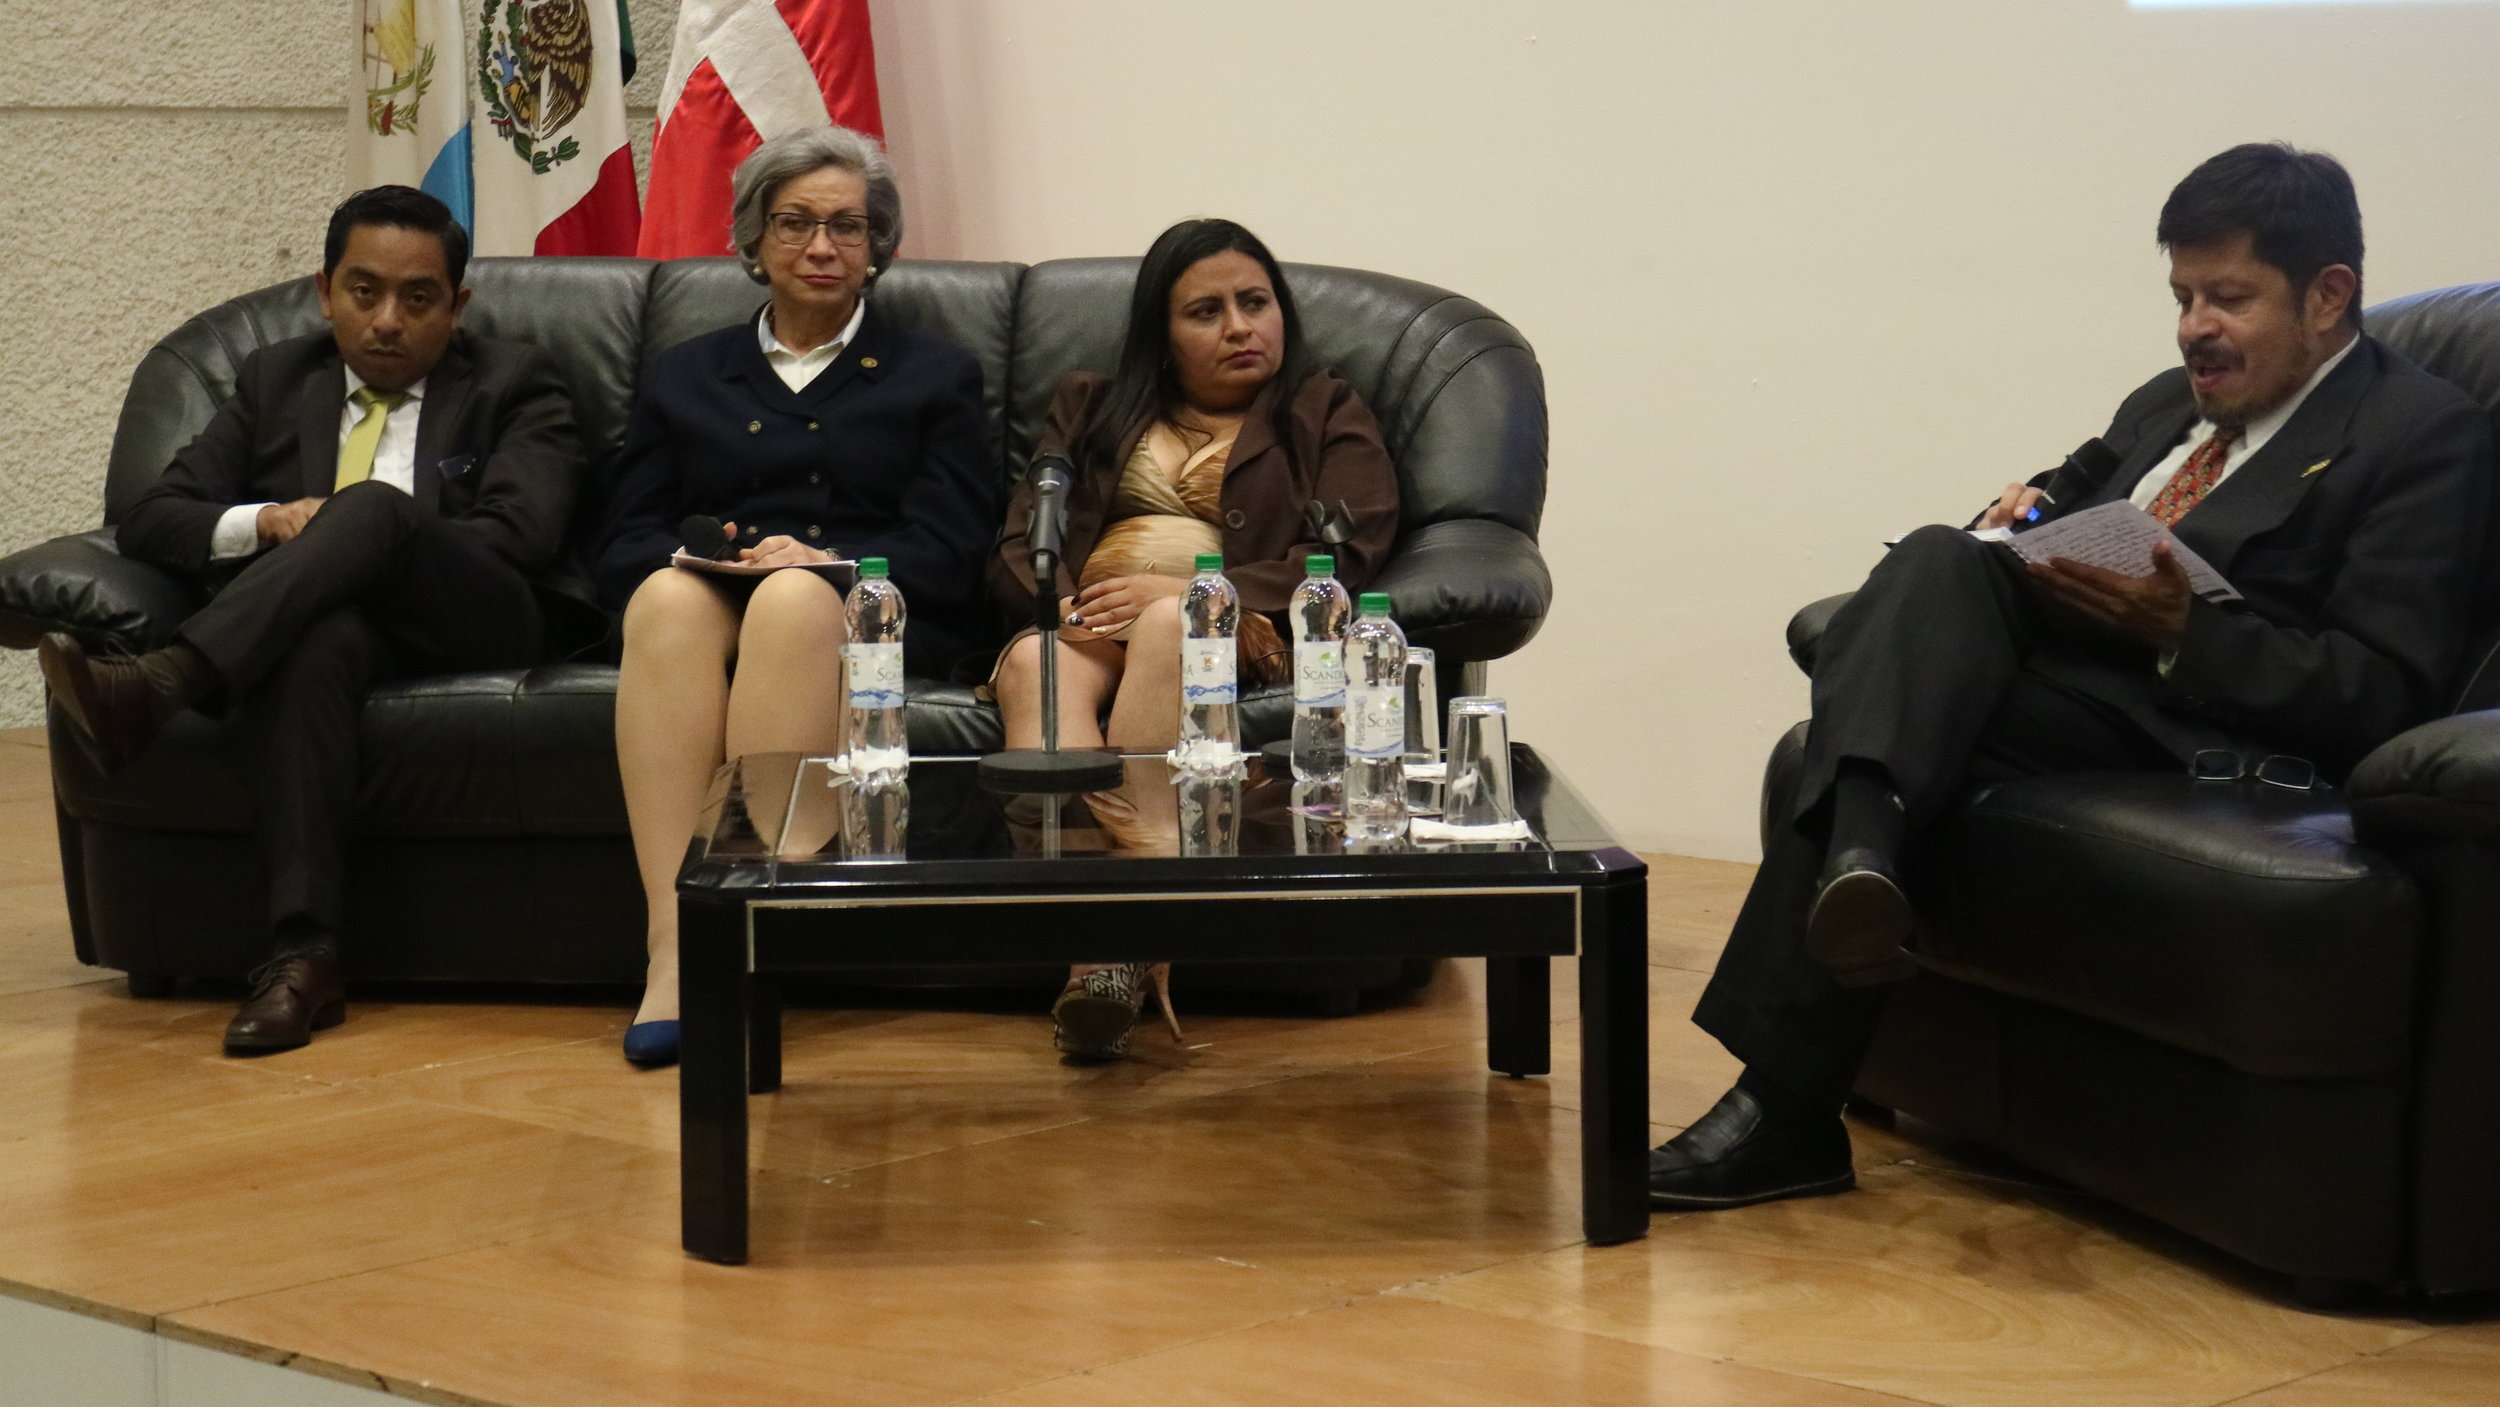 Supreme Court judge Maria Eugenia Morales Aceña at the Q&A for LA PRENDA with Sobrevivientes lawyer Rodolfo Diaz and Karin Gramajo Lopez. Guatemala City, April 19, 2018.